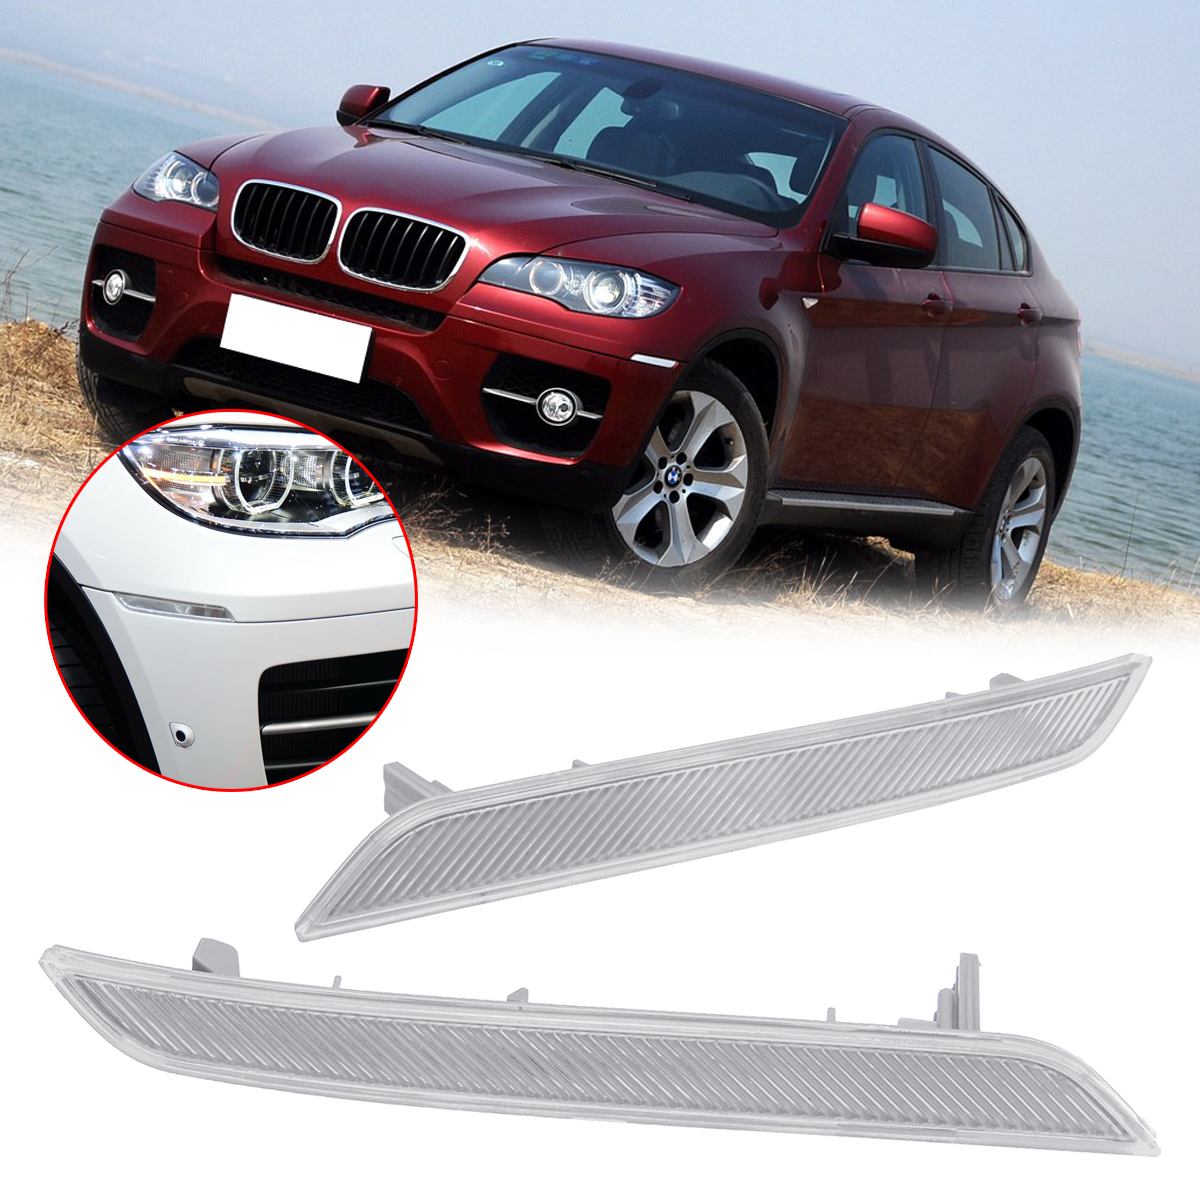 New Right/Left Car Reflective Strips Front Bumper Side Marker Reflector Warning Light Cover Plastic for BMW E71 E72 X6 2007-2014New Right/Left Car Reflective Strips Front Bumper Side Marker Reflector Warning Light Cover Plastic for BMW E71 E72 X6 2007-2014